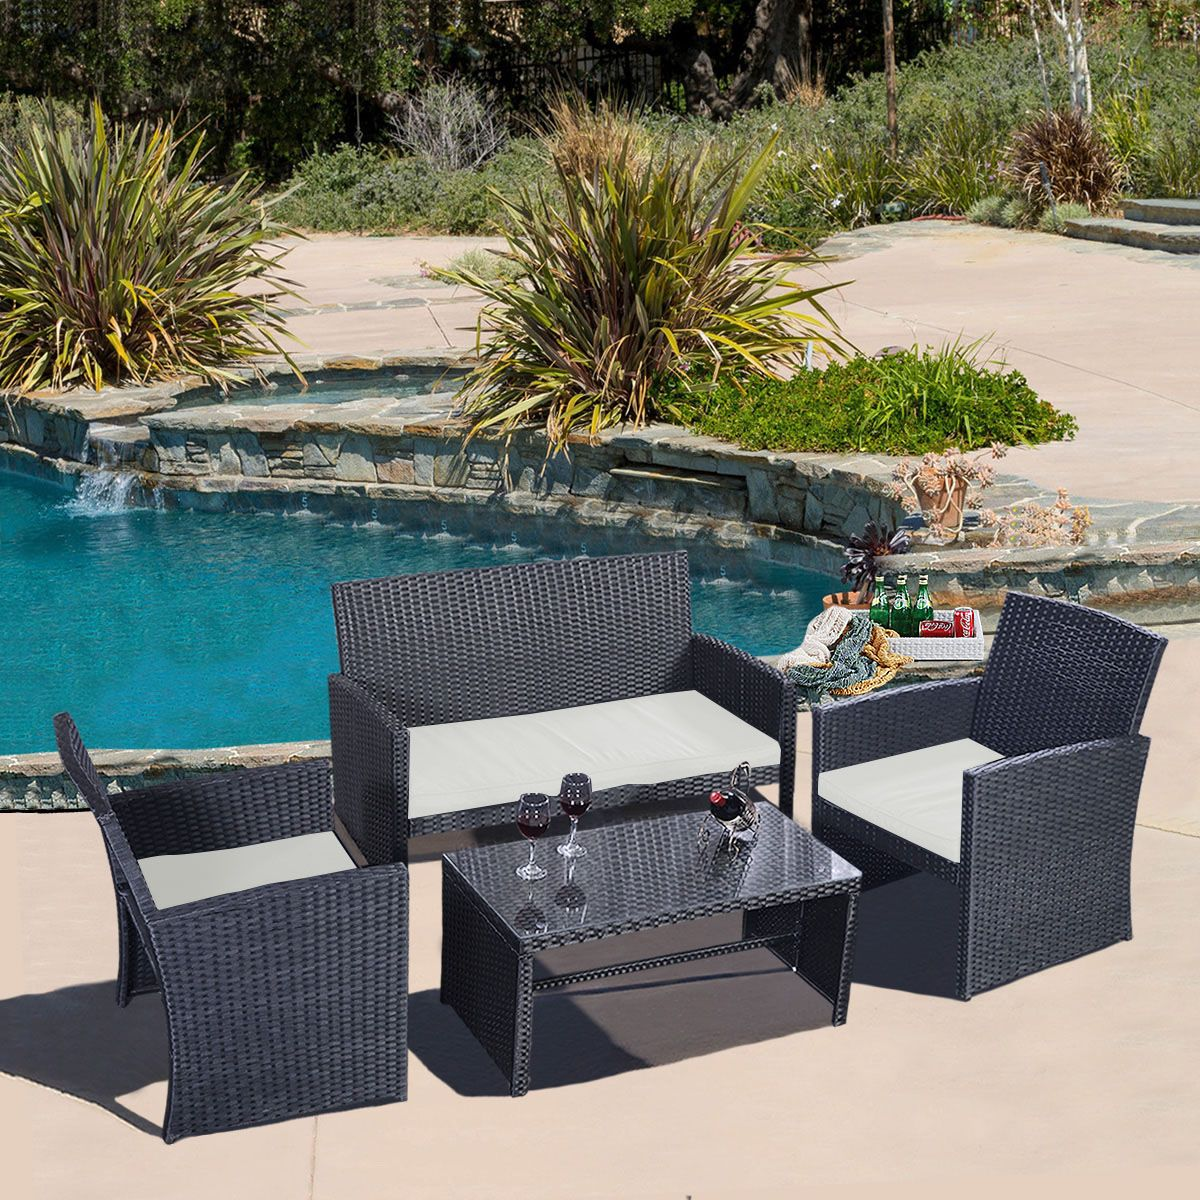 Rattan Garden Furniture 4 Seater best choice products outdoor garden patio 4pc cushioned seat black